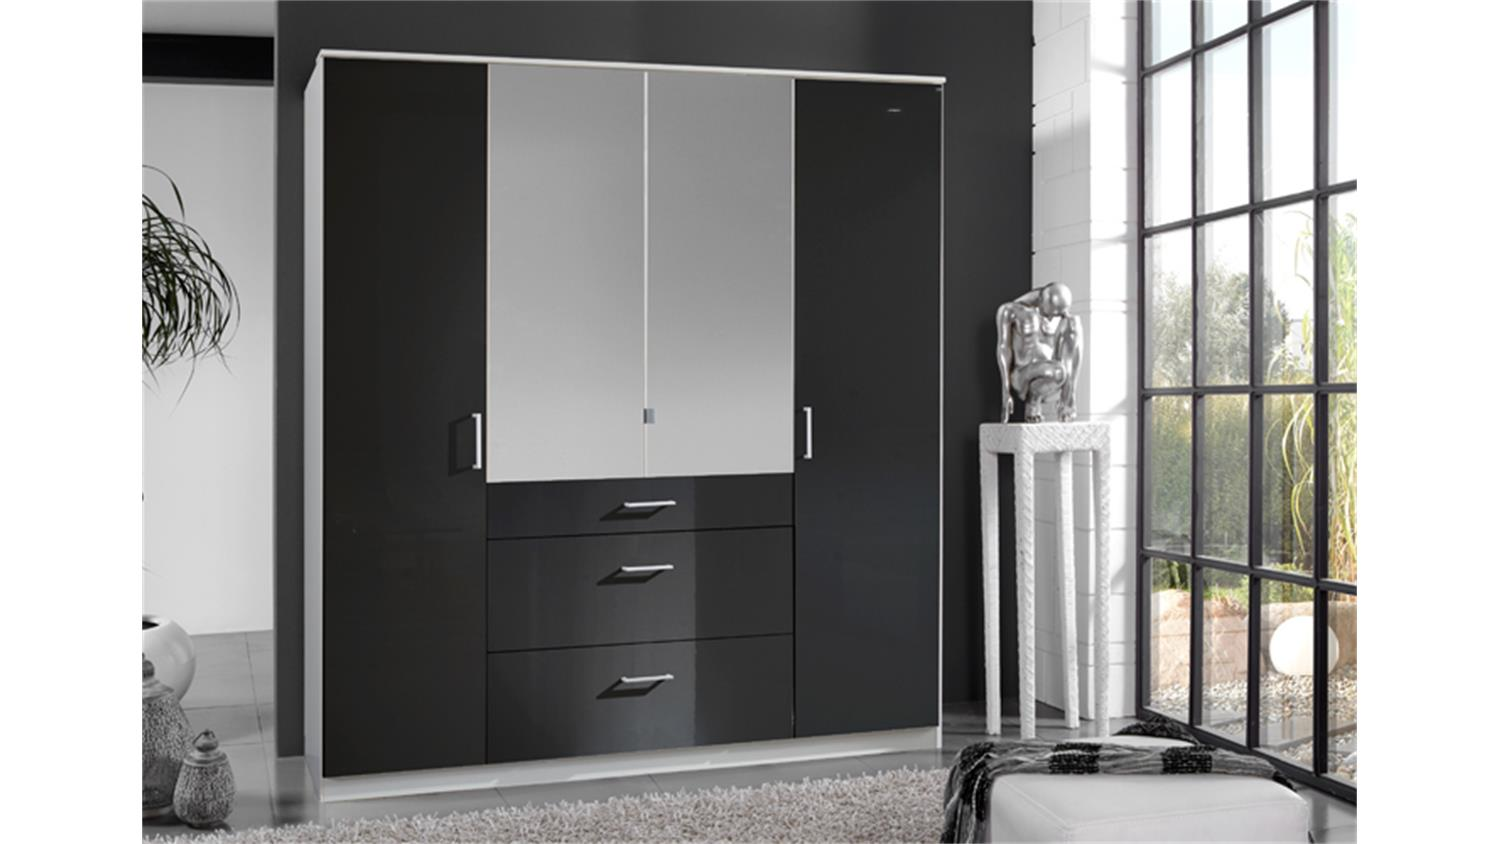 kleiderschrank clack front hochglanz schwarz spiegel 180 cm. Black Bedroom Furniture Sets. Home Design Ideas